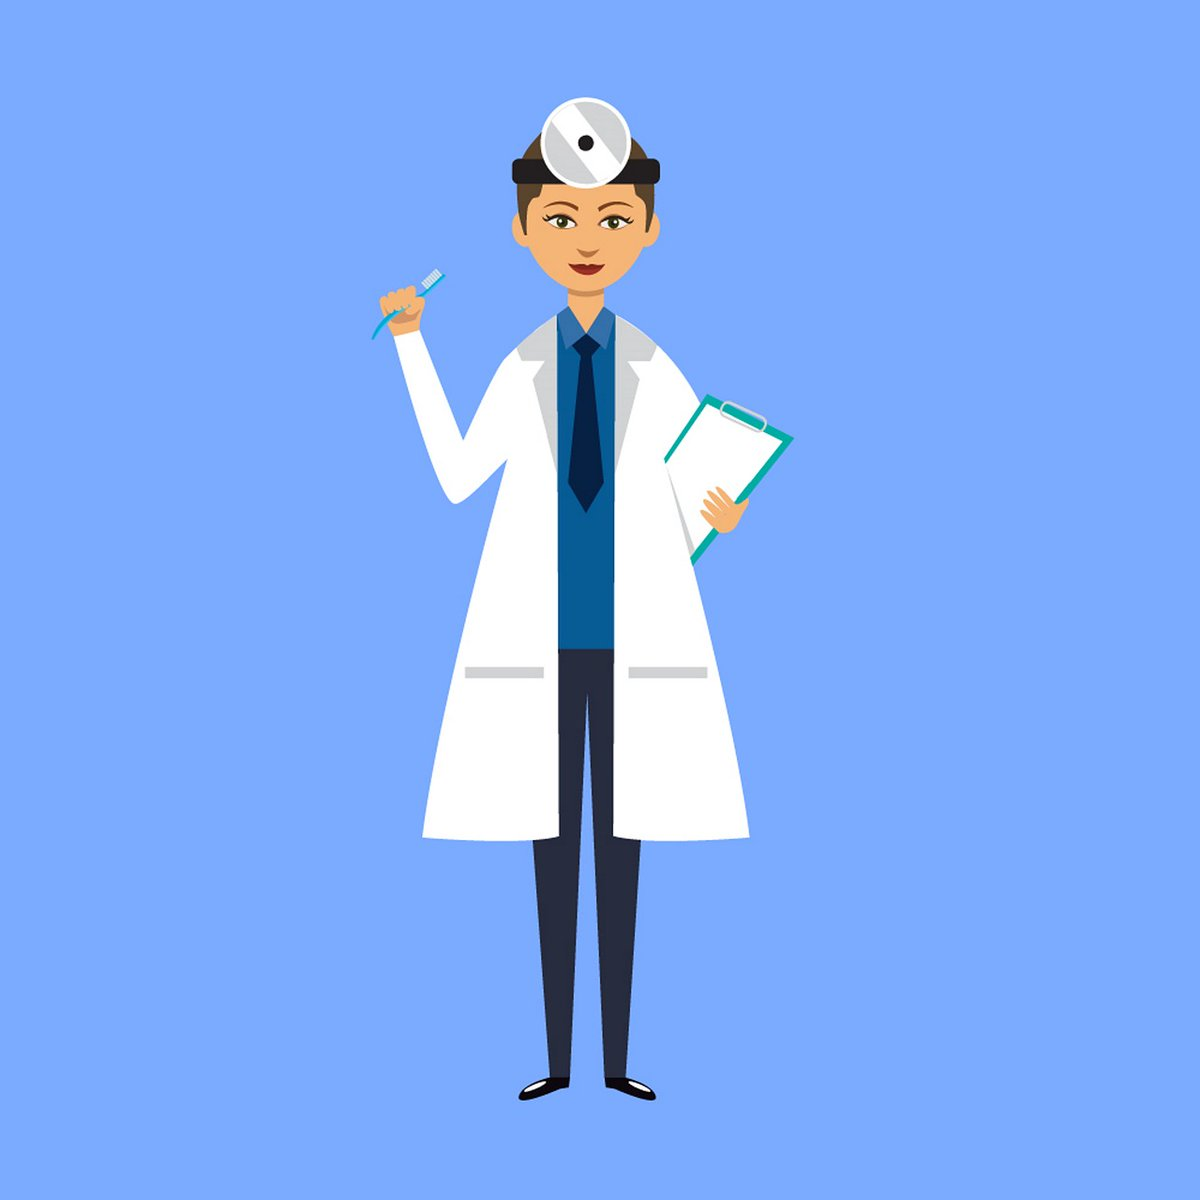 #InternationalNursesDay #Nurses are doing incredible work in every hospital of India, especially during this time of #COVID19. Lets acknowledge their dedication to serve patients and show our appreciation for these often less talked about #CoronaWarriors. @Clove_Dental